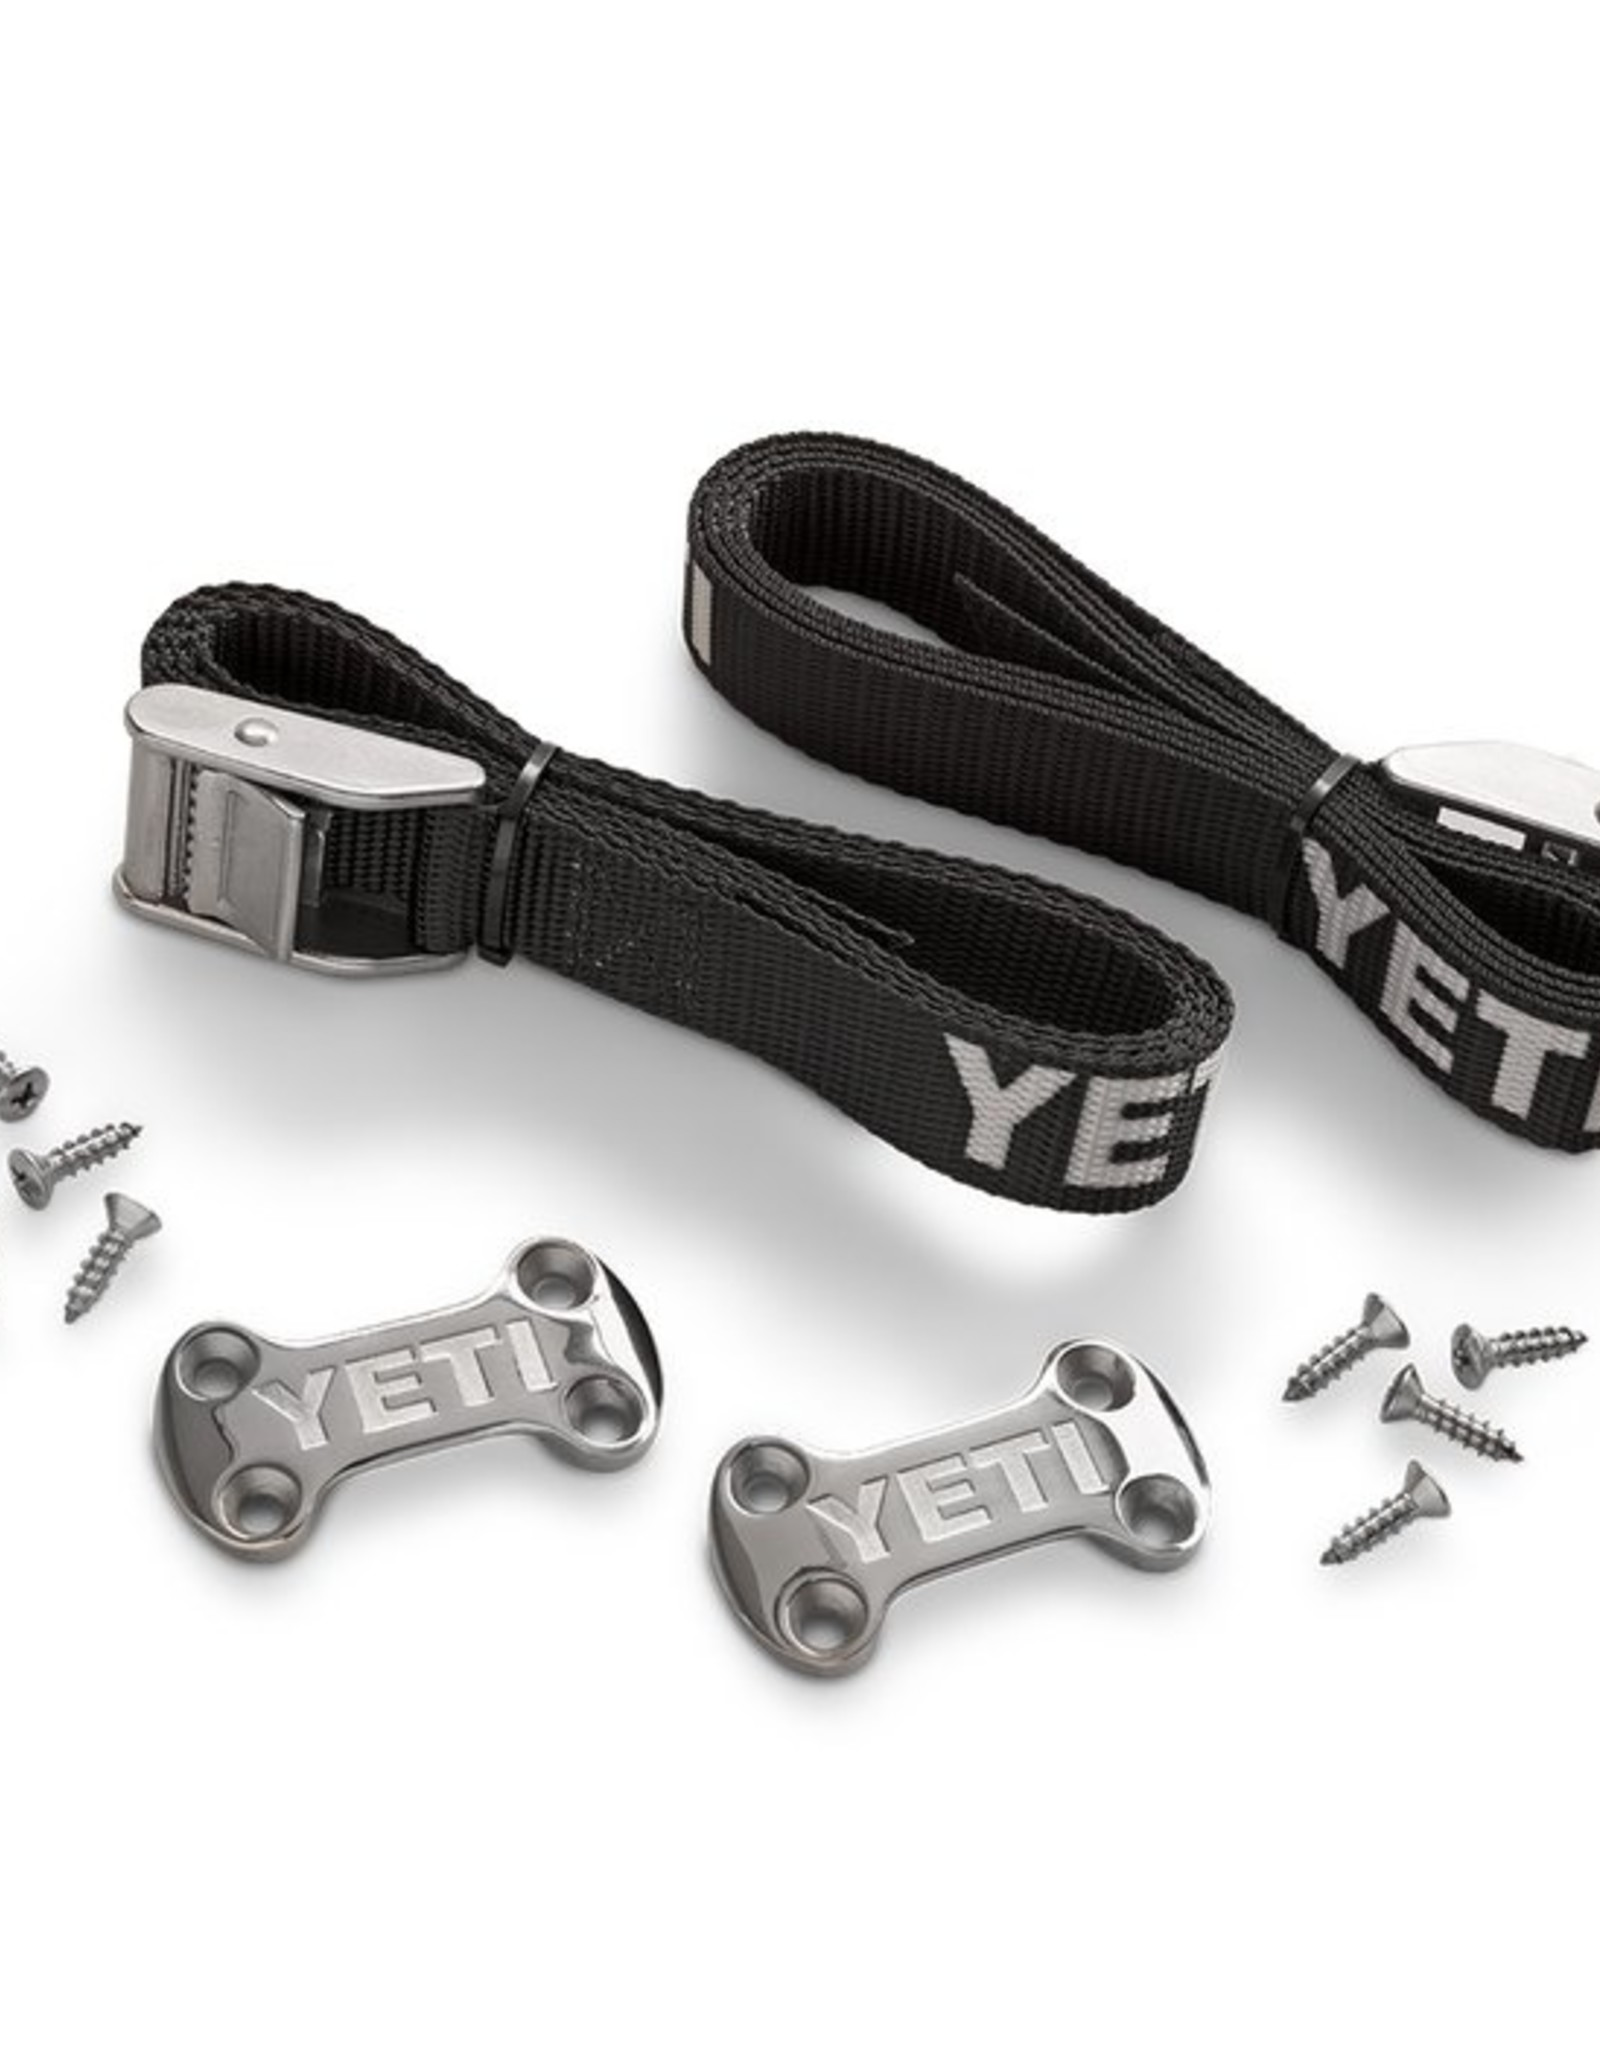 YETI Coolers Tie-Down Kit